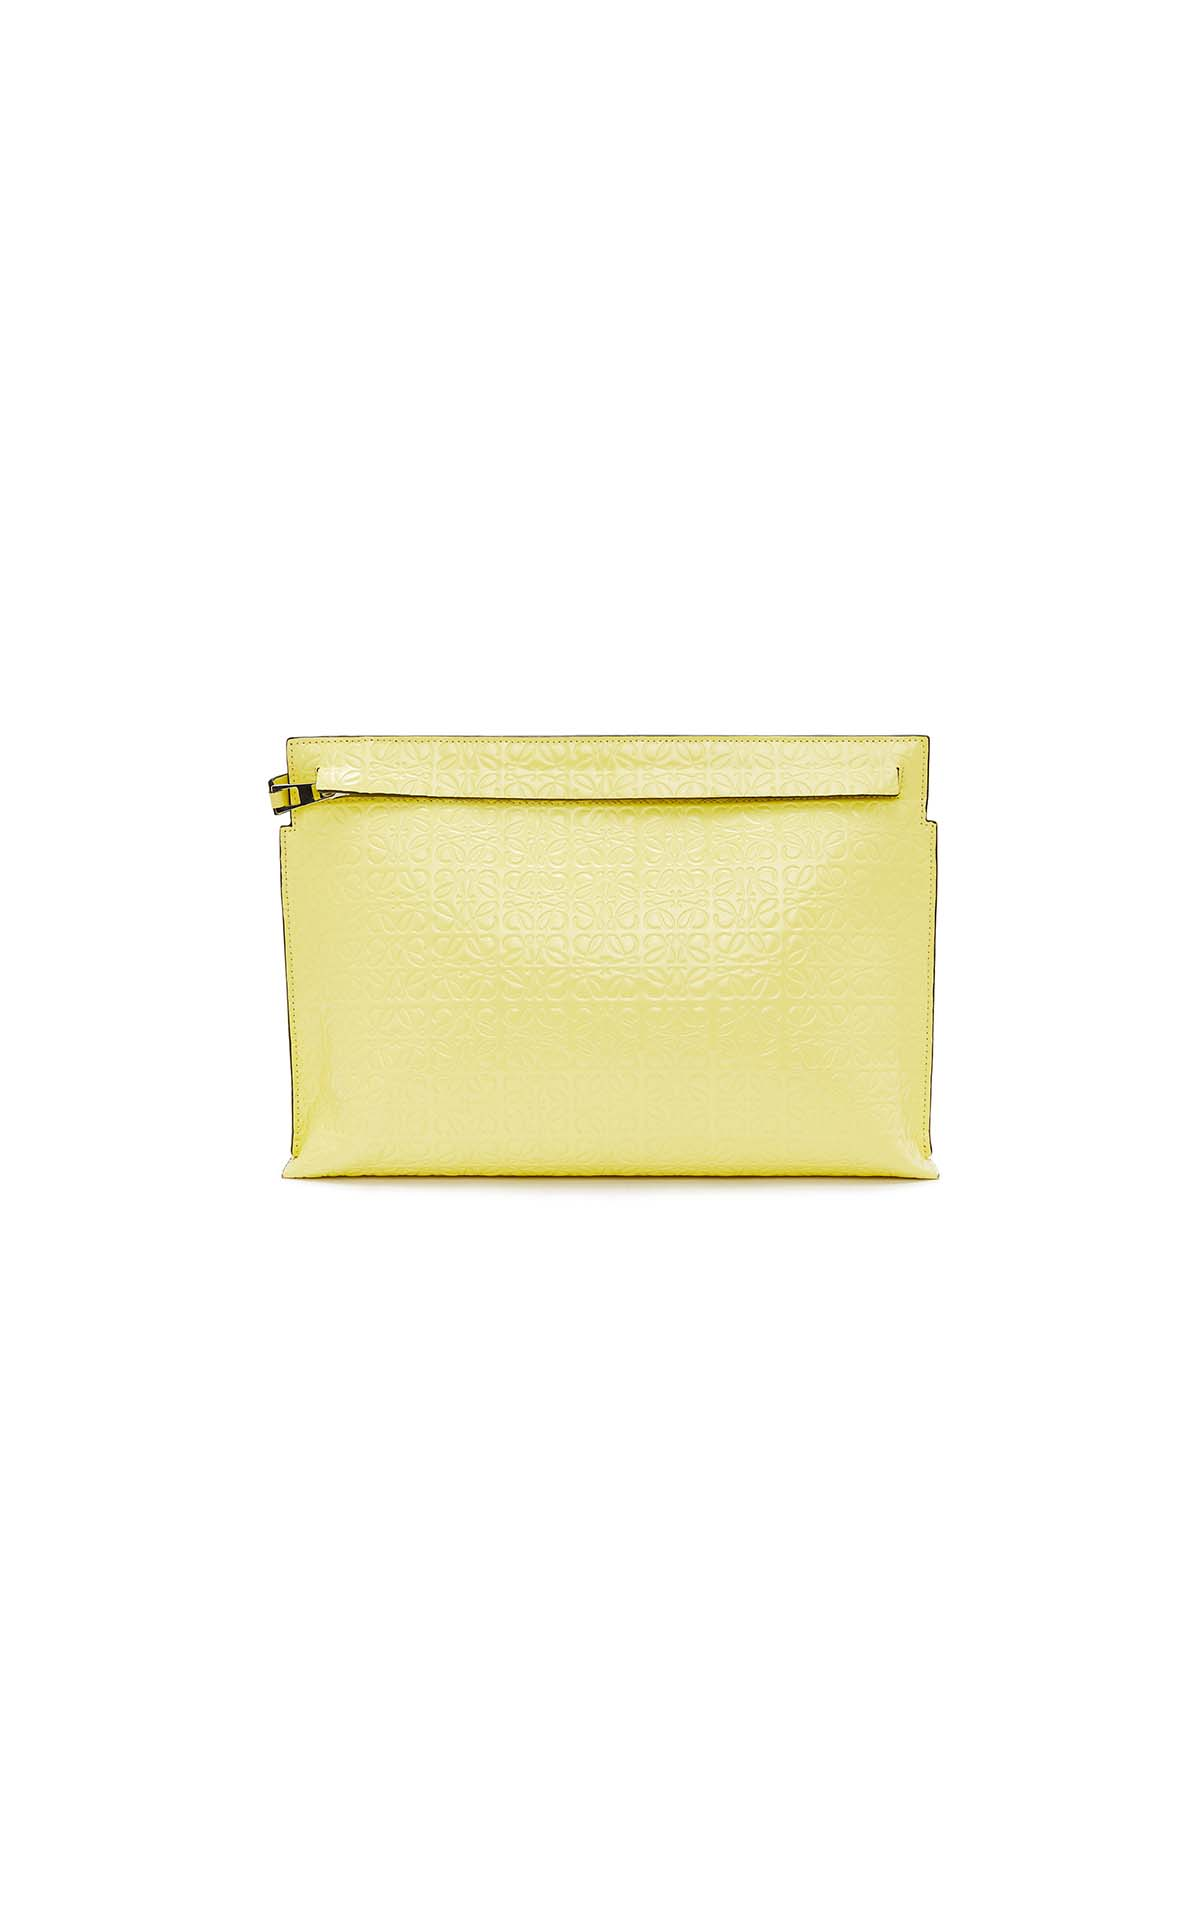 Loewe T pouch repeat in yellow at The Bicester Village Shopping Collection